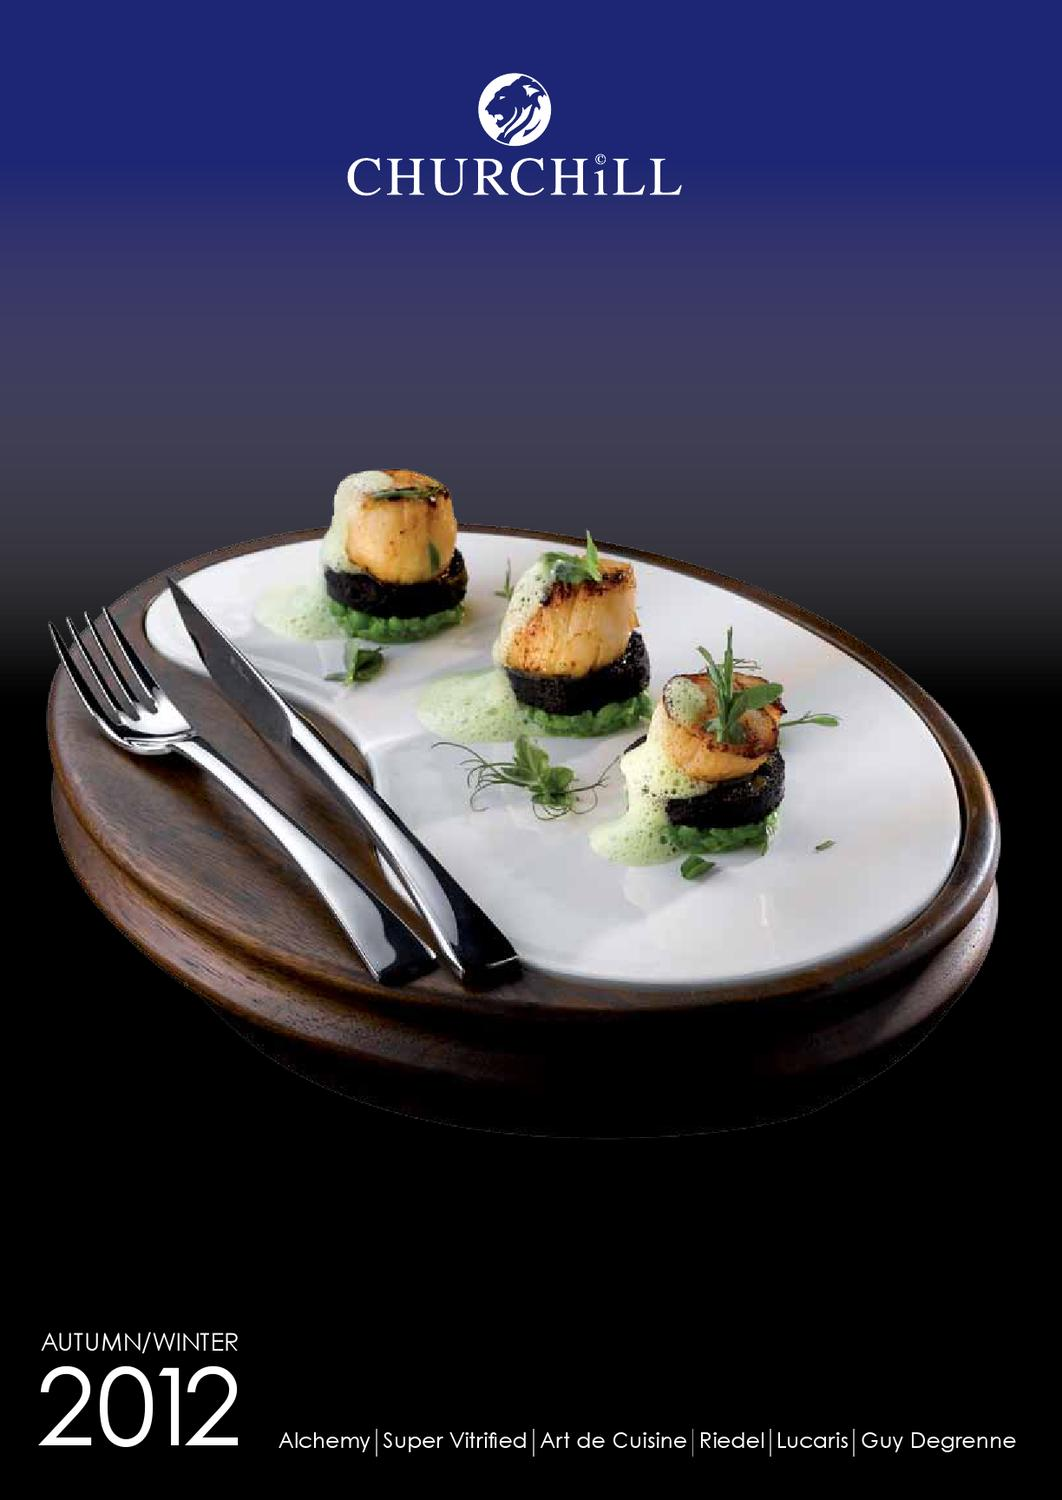 Katalog churchill porculan by snje ana vehar issuu for Art de cuisine vitrified stoneware